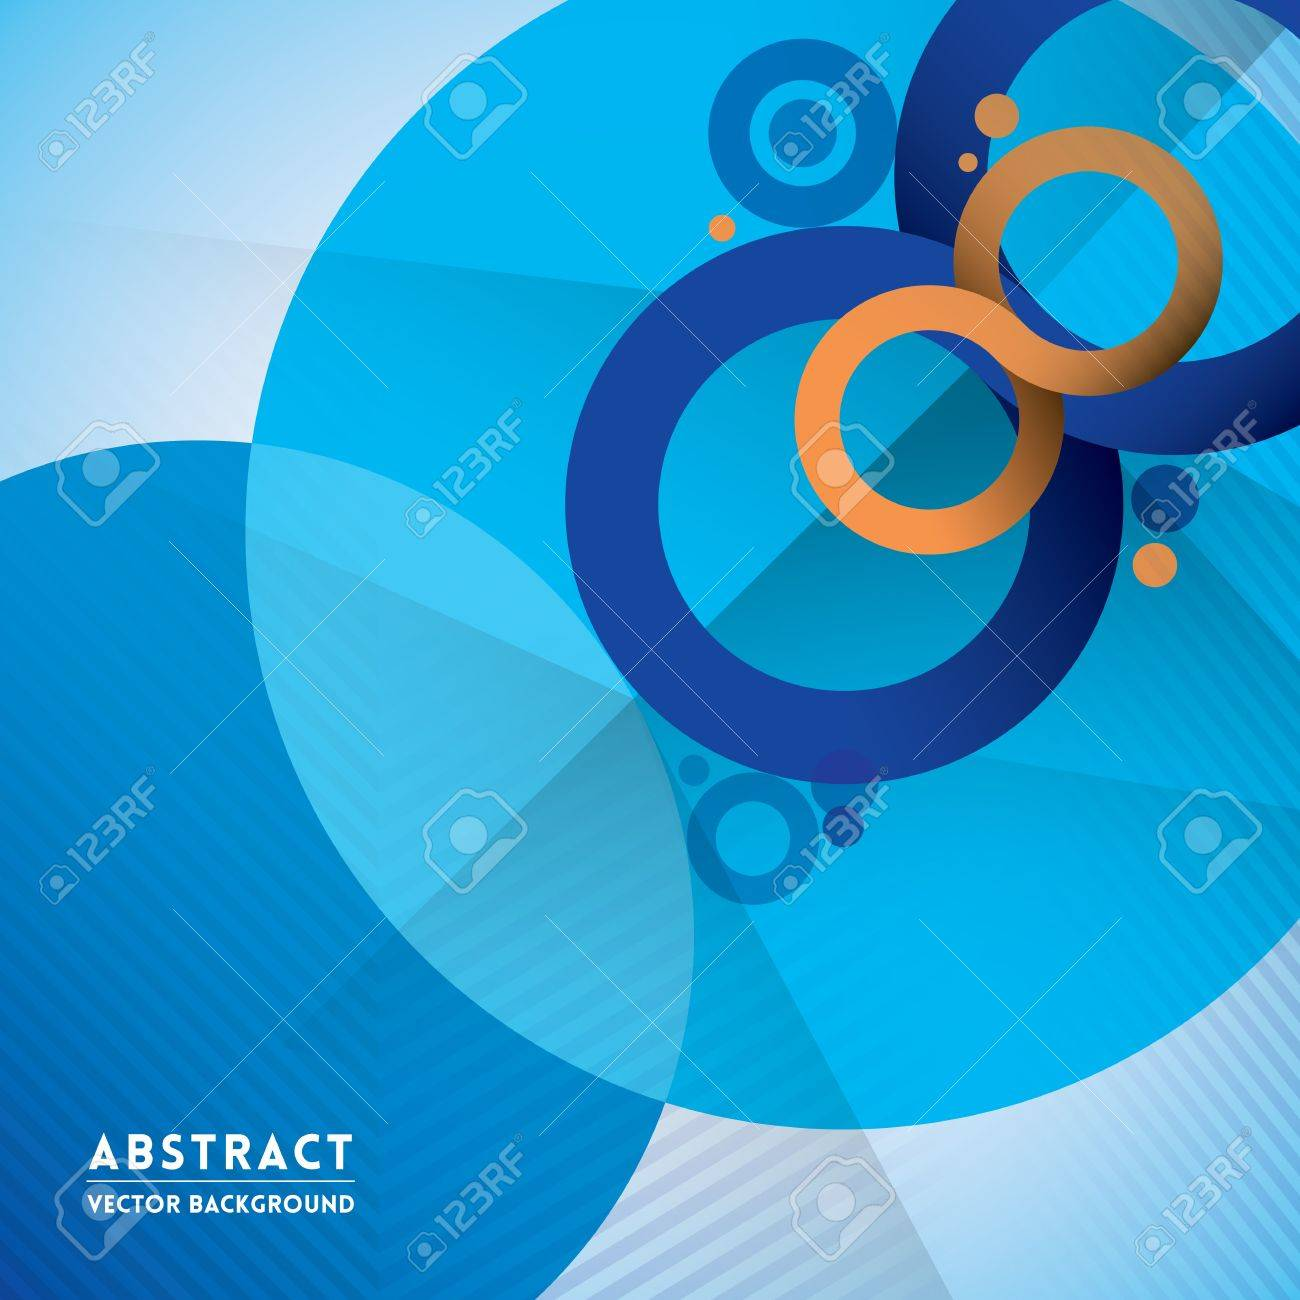 Abstract infinity symbol and circle shape background for web abstract infinity symbol and circle shape background for web design print presentation stock vector biocorpaavc Gallery